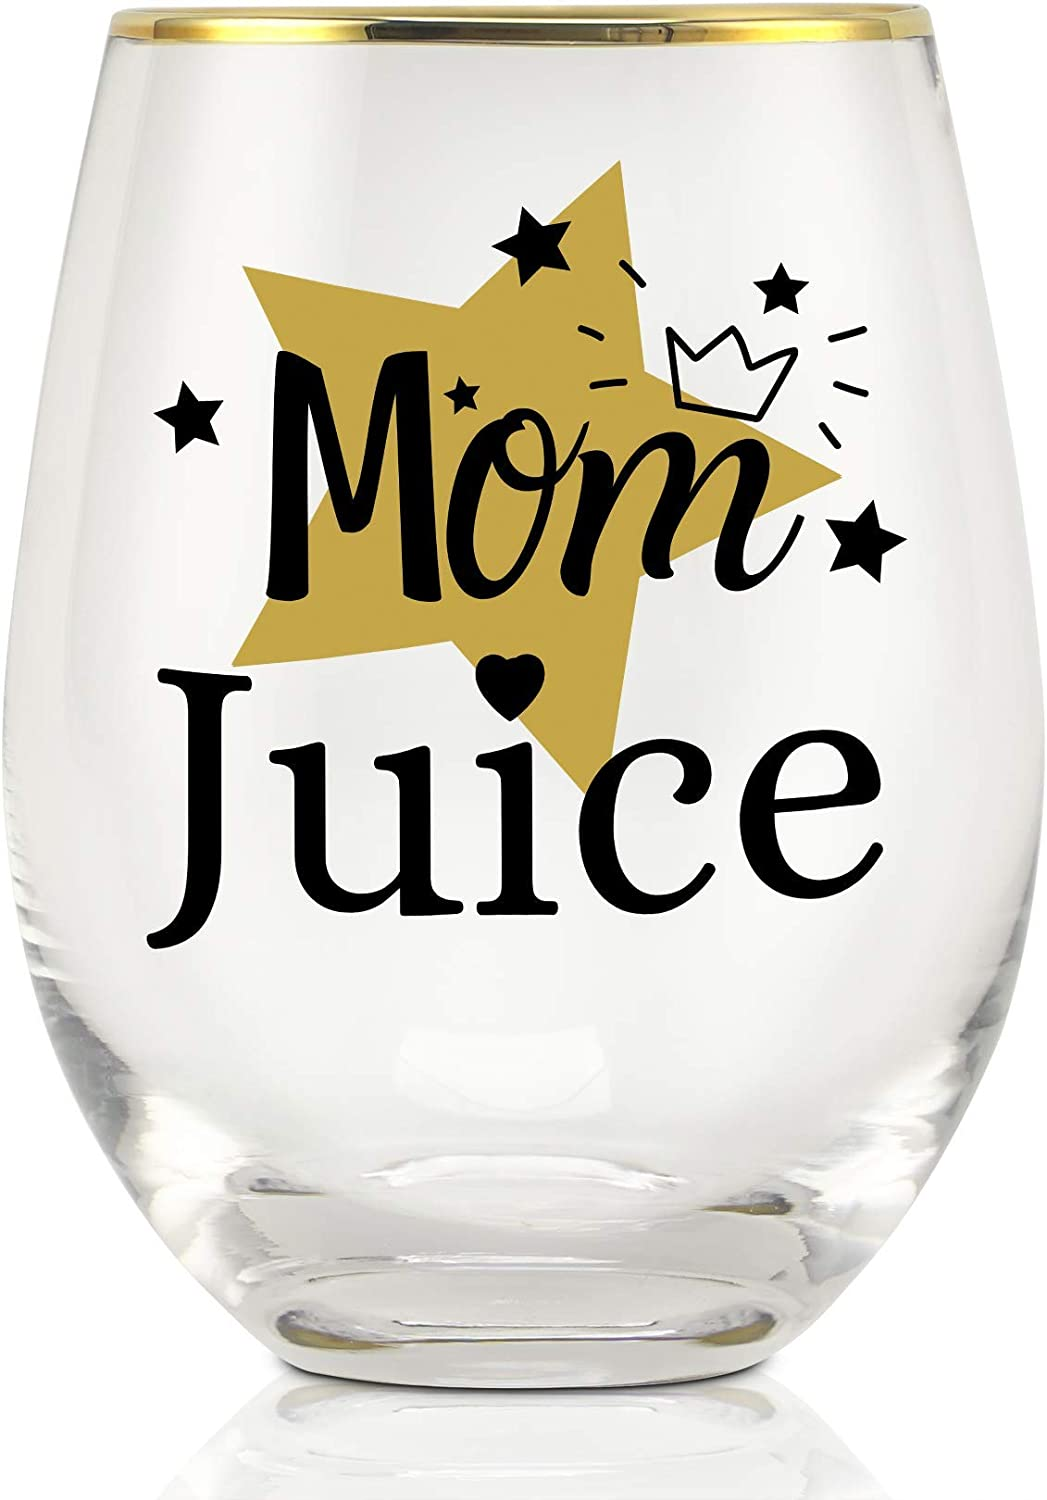 Onebttl Funny Mom Gifts from Daughter, Son, for Birthday, Christmas, Baby Shower Gifts for New Mom, Stemless Wine Glasses - 18oz - Mom Juice